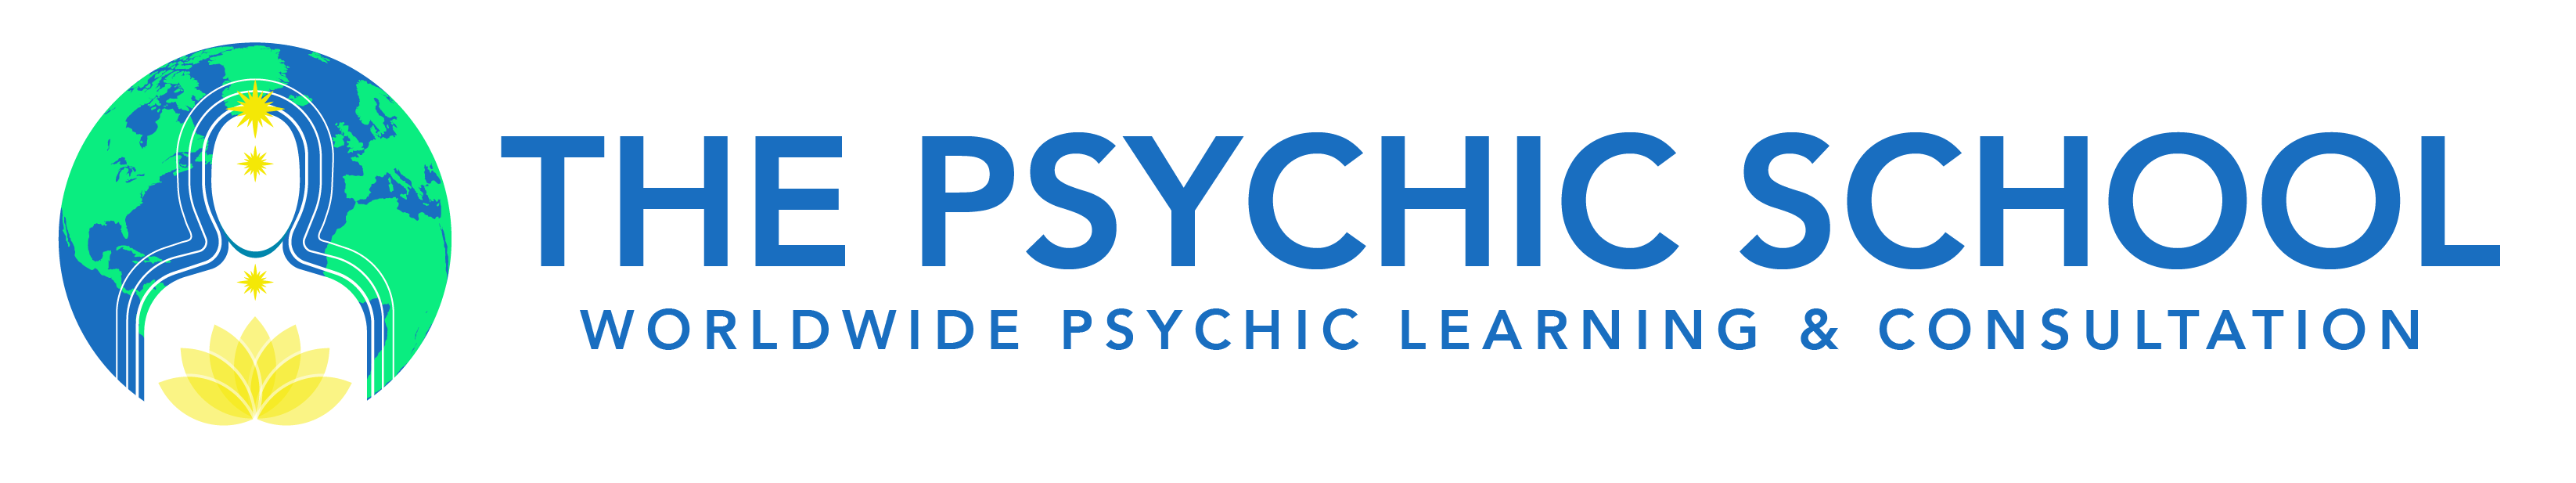 The Psychic School